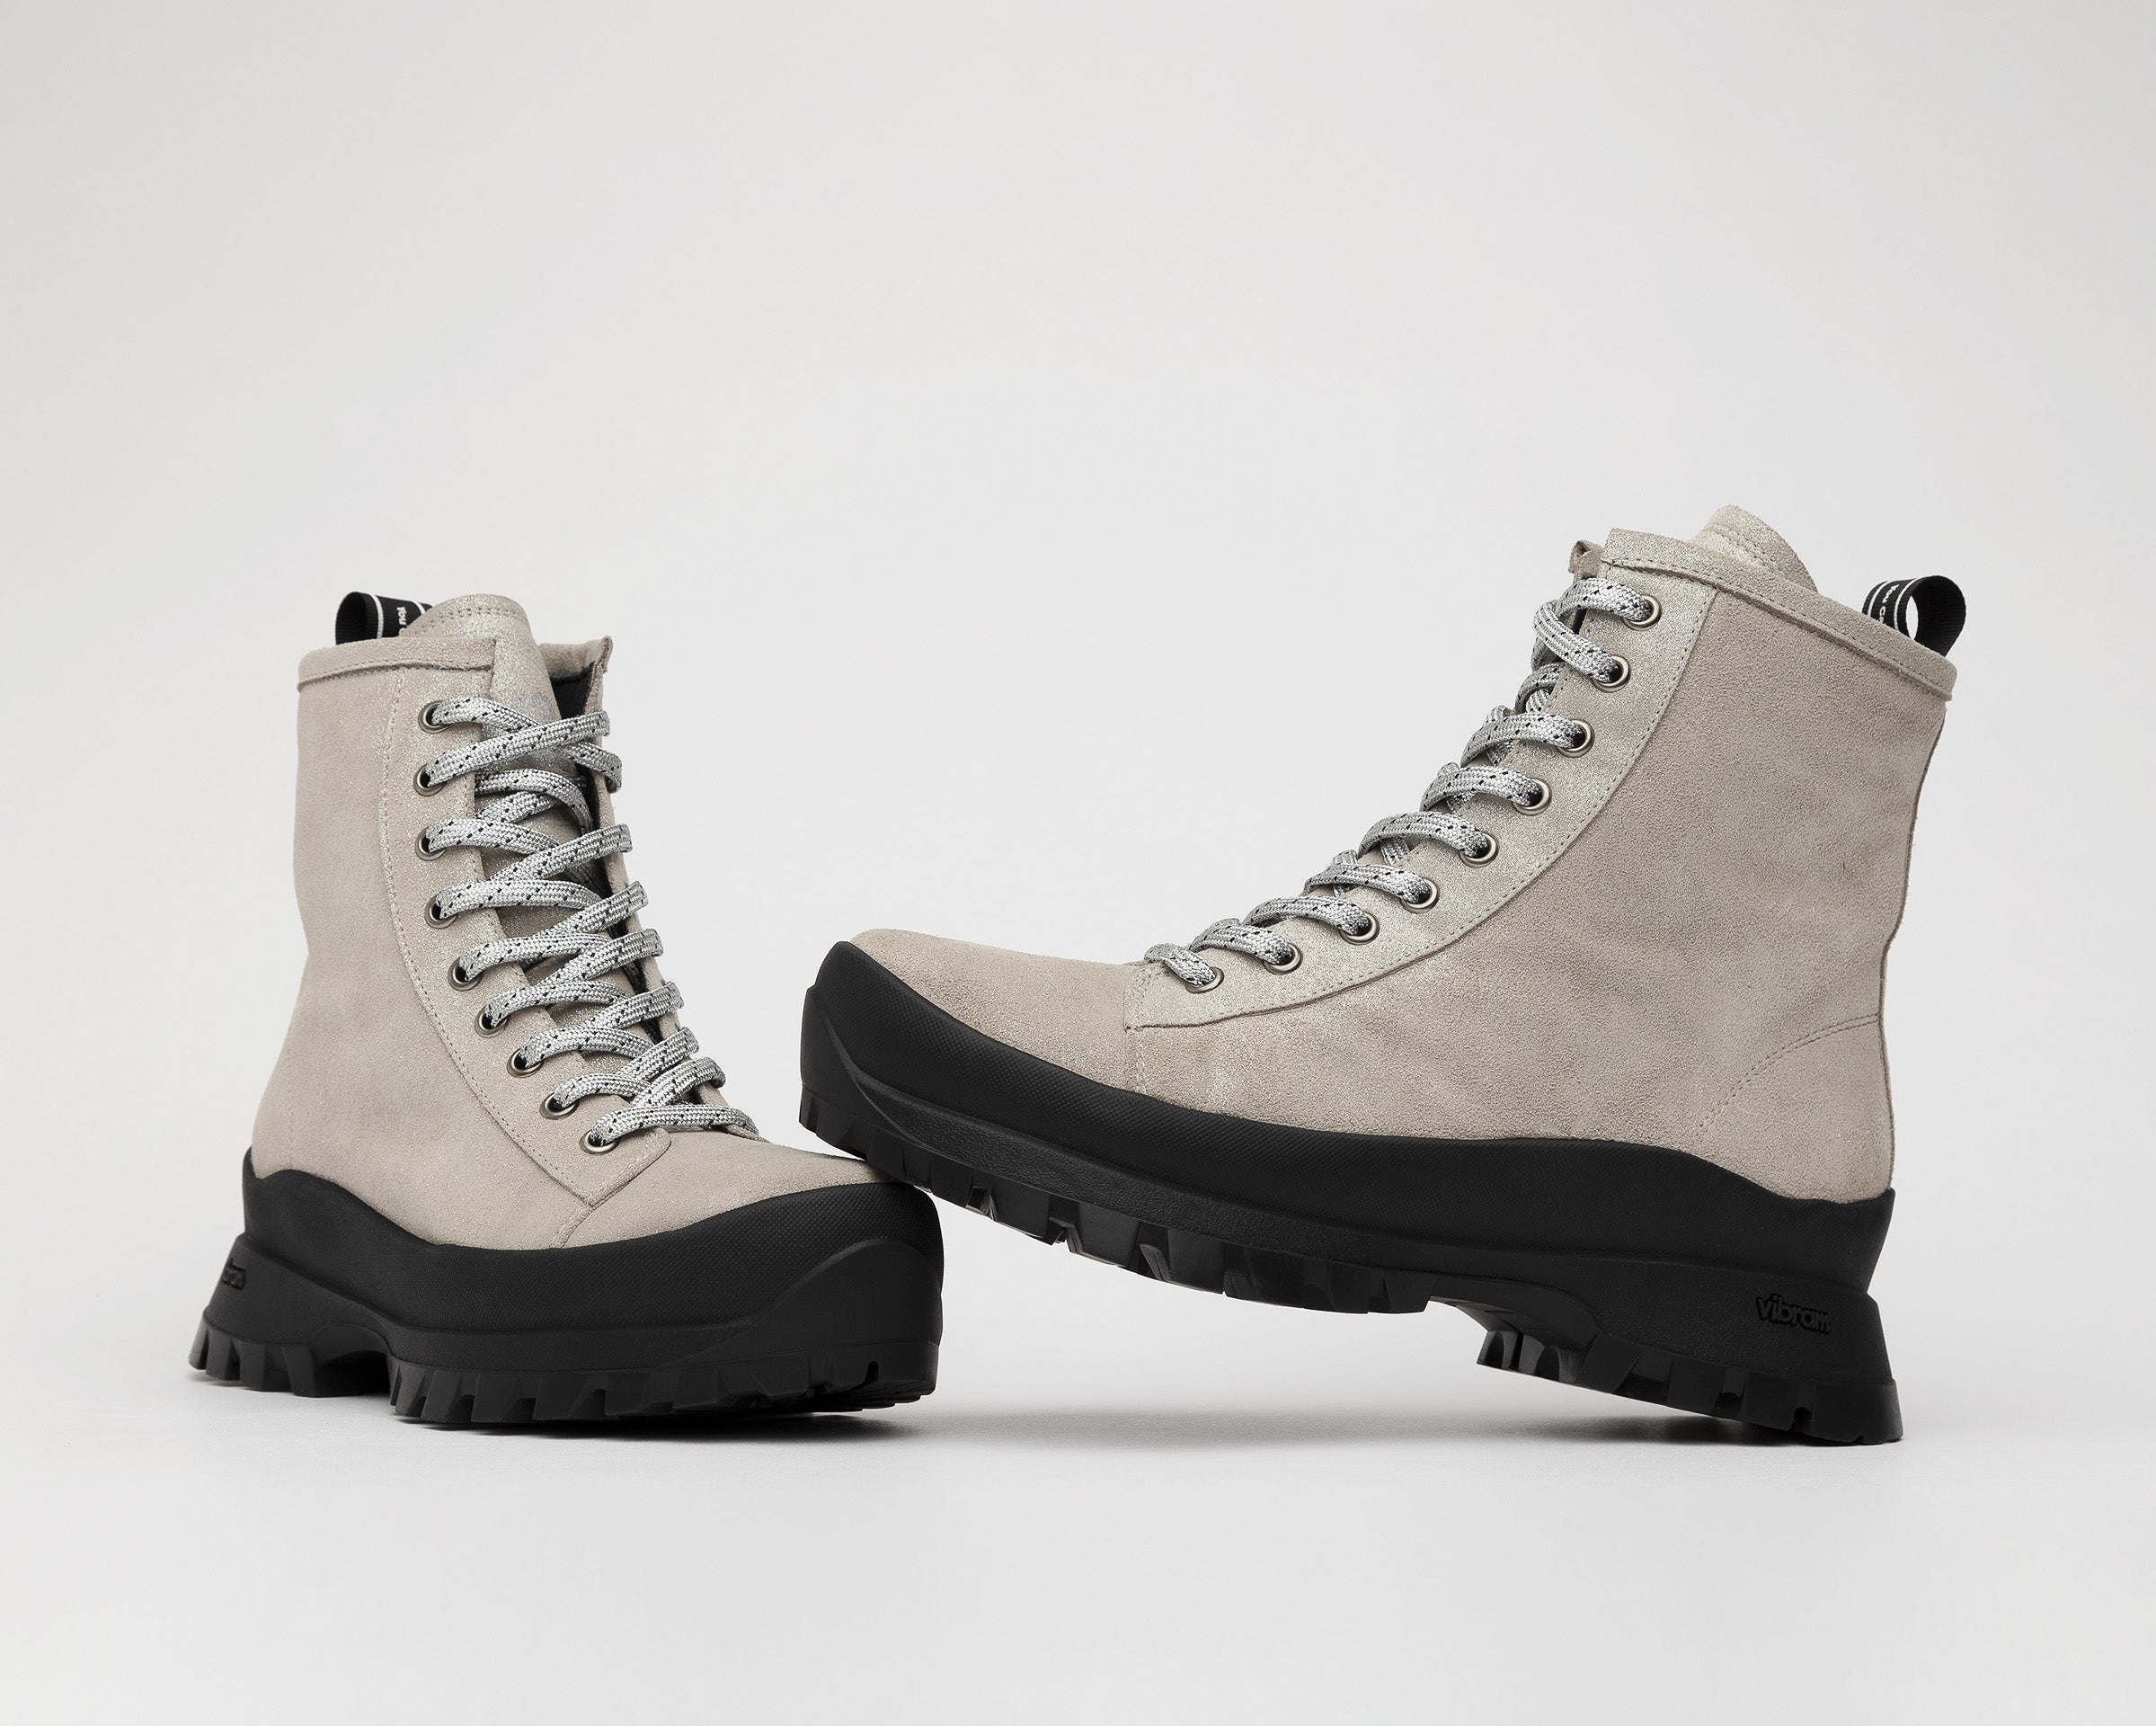 Denise Combat Boot with Vibram bottom in Spark - Detail 1